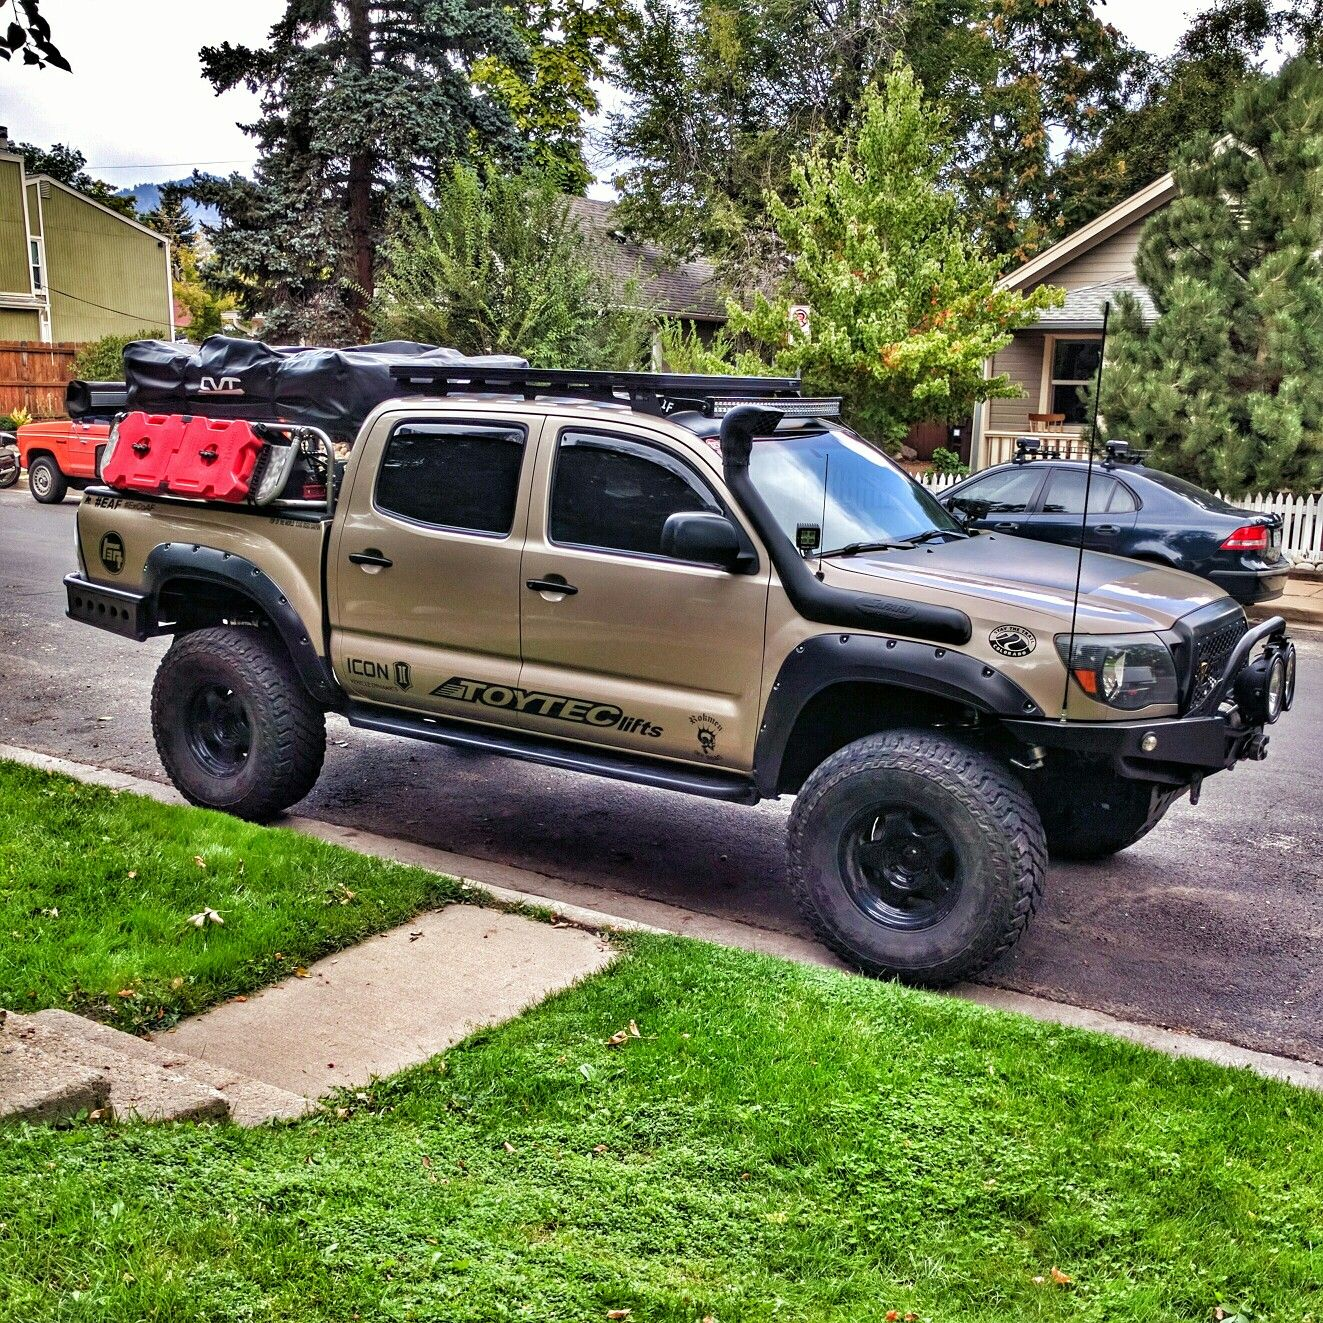 Toyota Truck Aftermarket Parts: I Saw This Great Tacoma Today, They Even Had A High